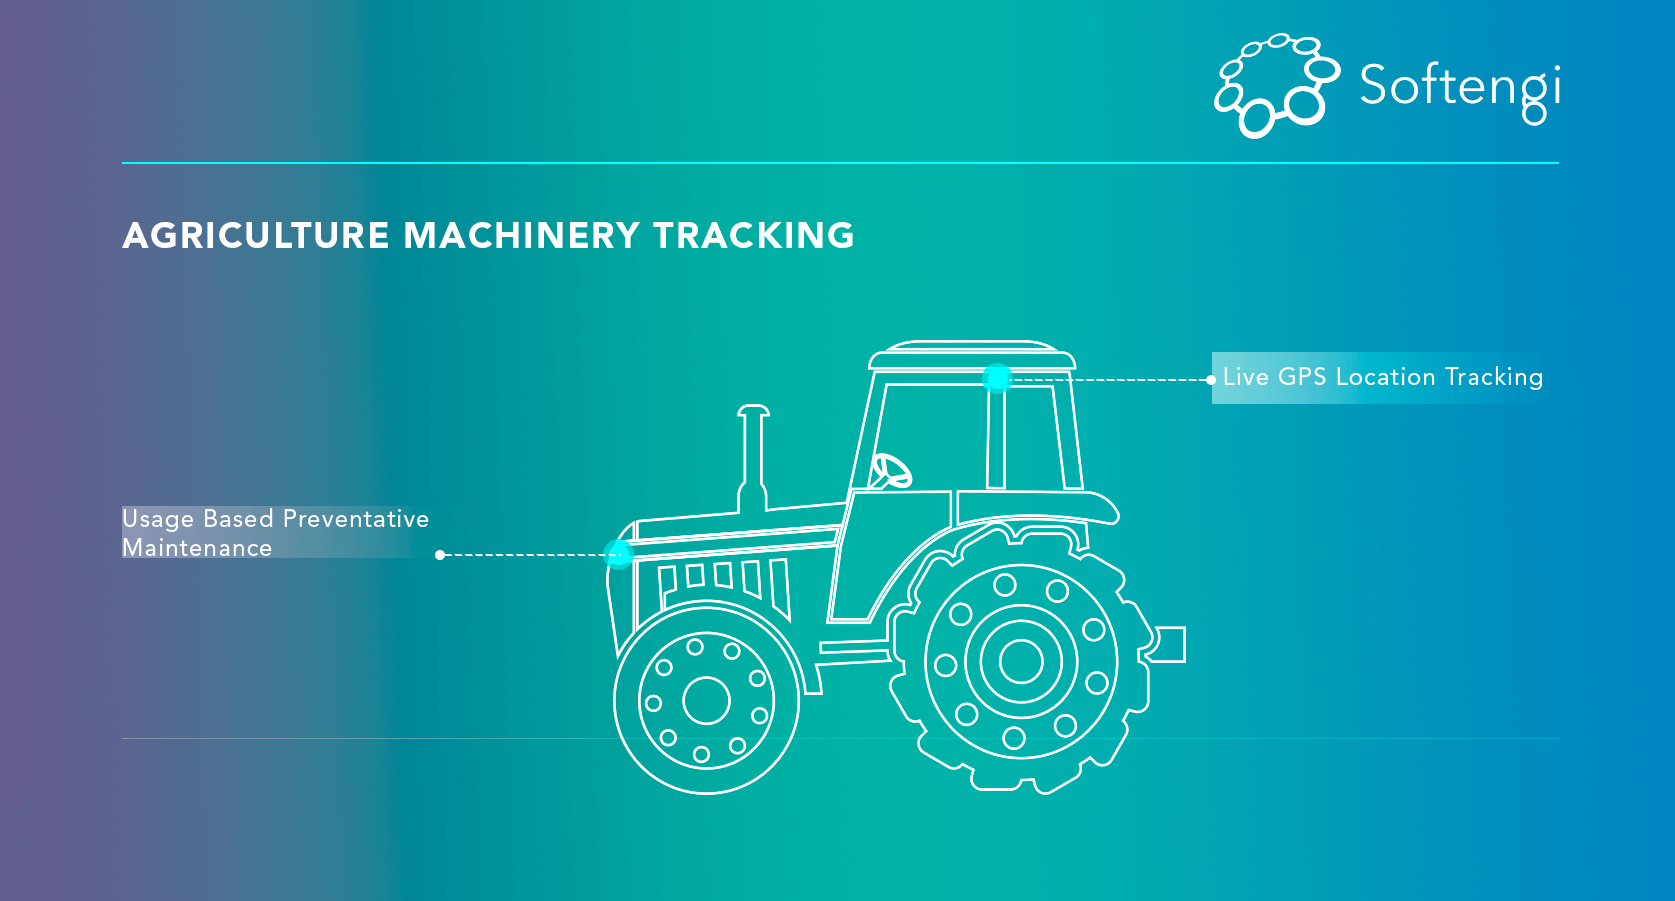 Agriculture Machinery Tracking Softengi